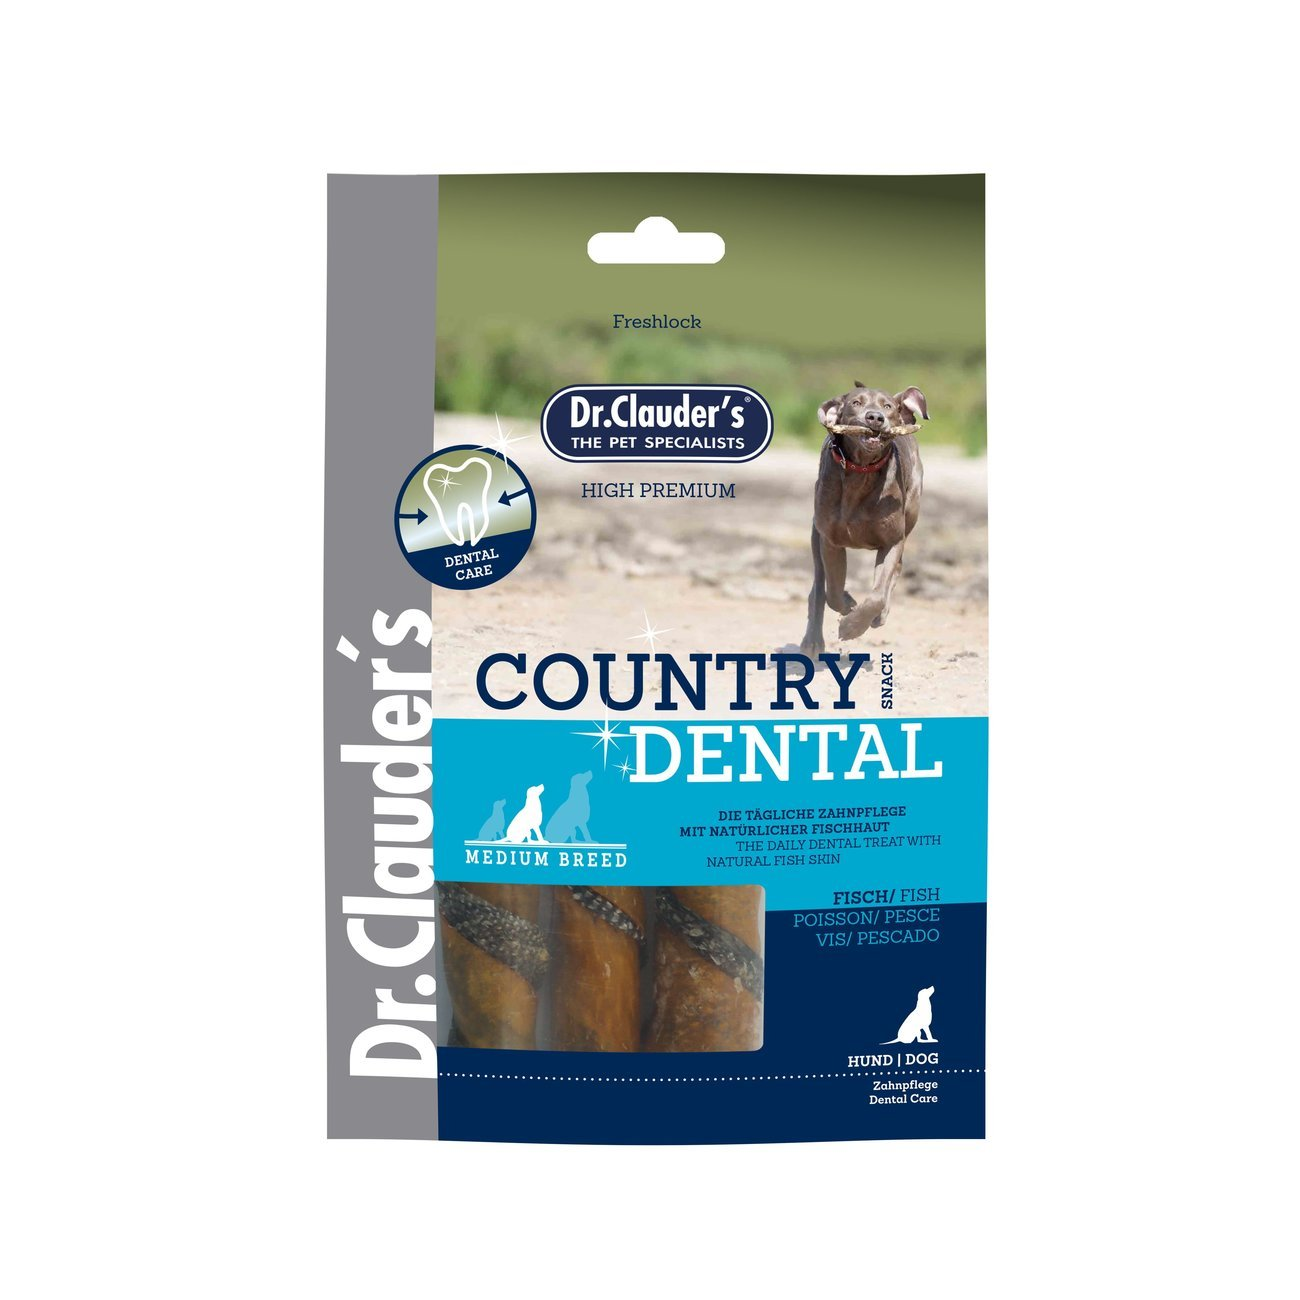 Dr. Clauders Country Dental Hundesnack Medium Breed, Bild 3